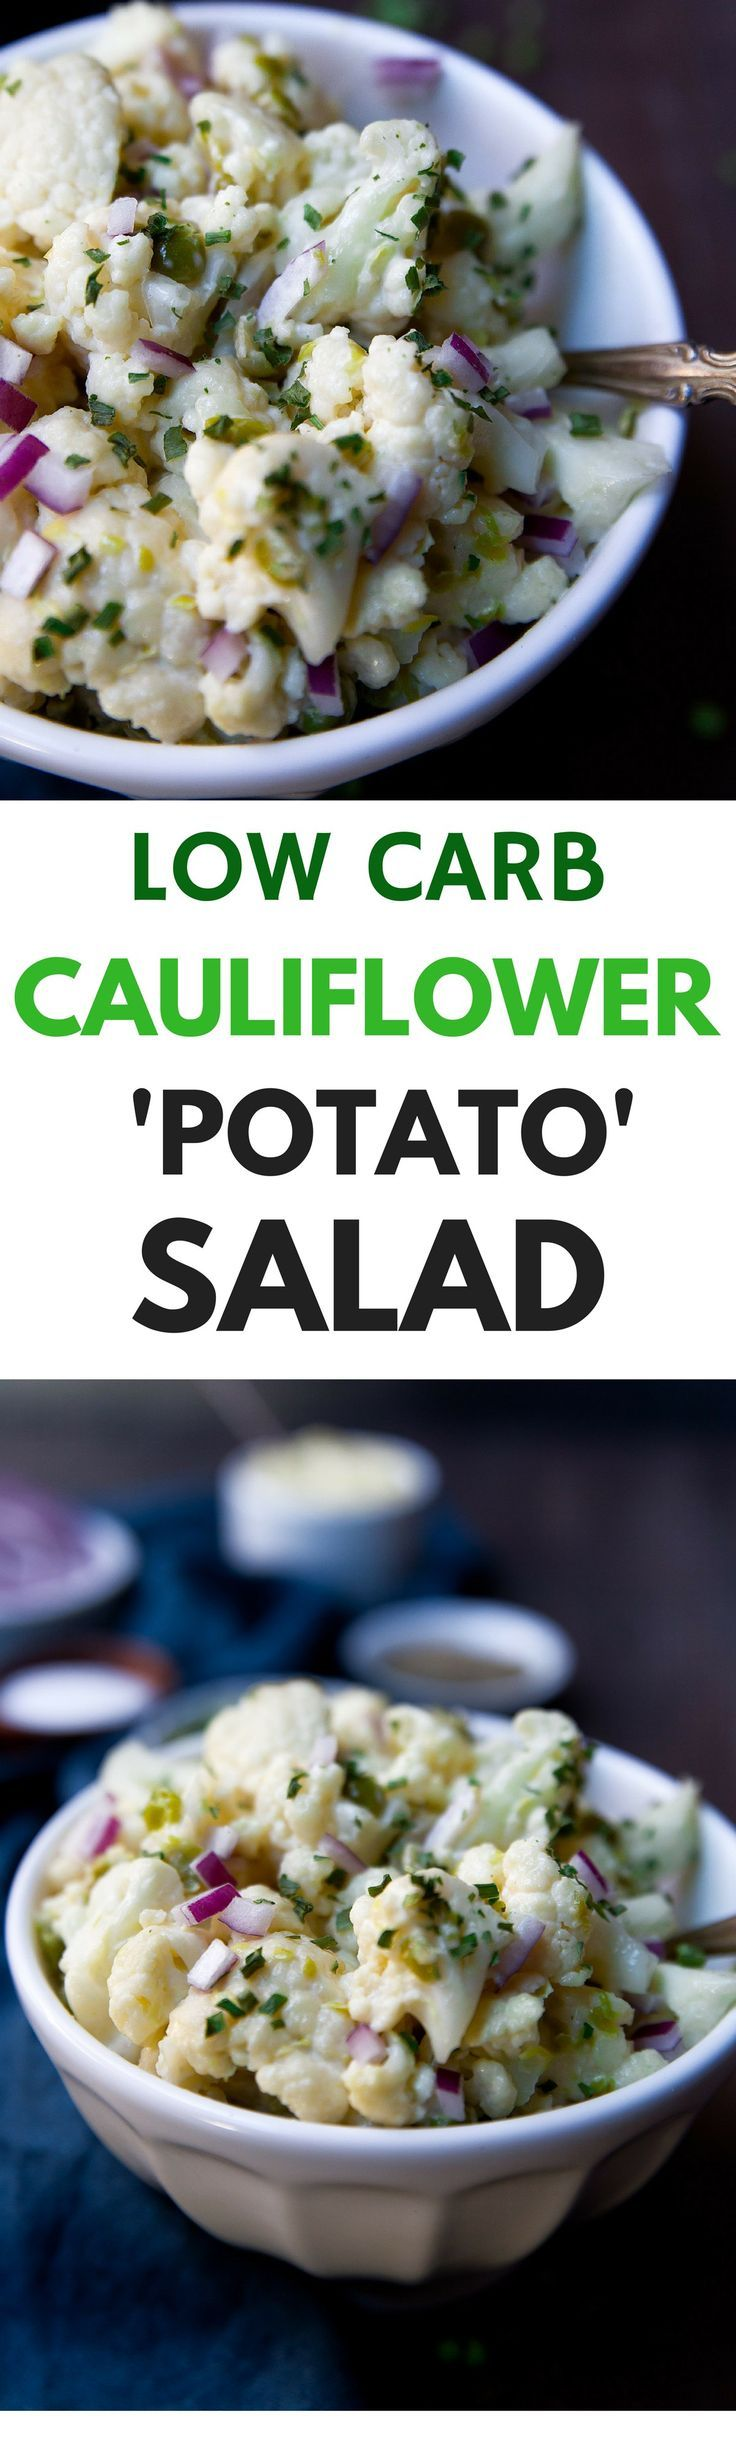 Low Carb Cauliflower Potato Salad. Serve up this healthy salad sans the potato. Traditional potato salad flavors but super lower carb with cauliflower instead. Healthy cauliflower salad recipe. Paleo cauliflower salad - quick and easy!